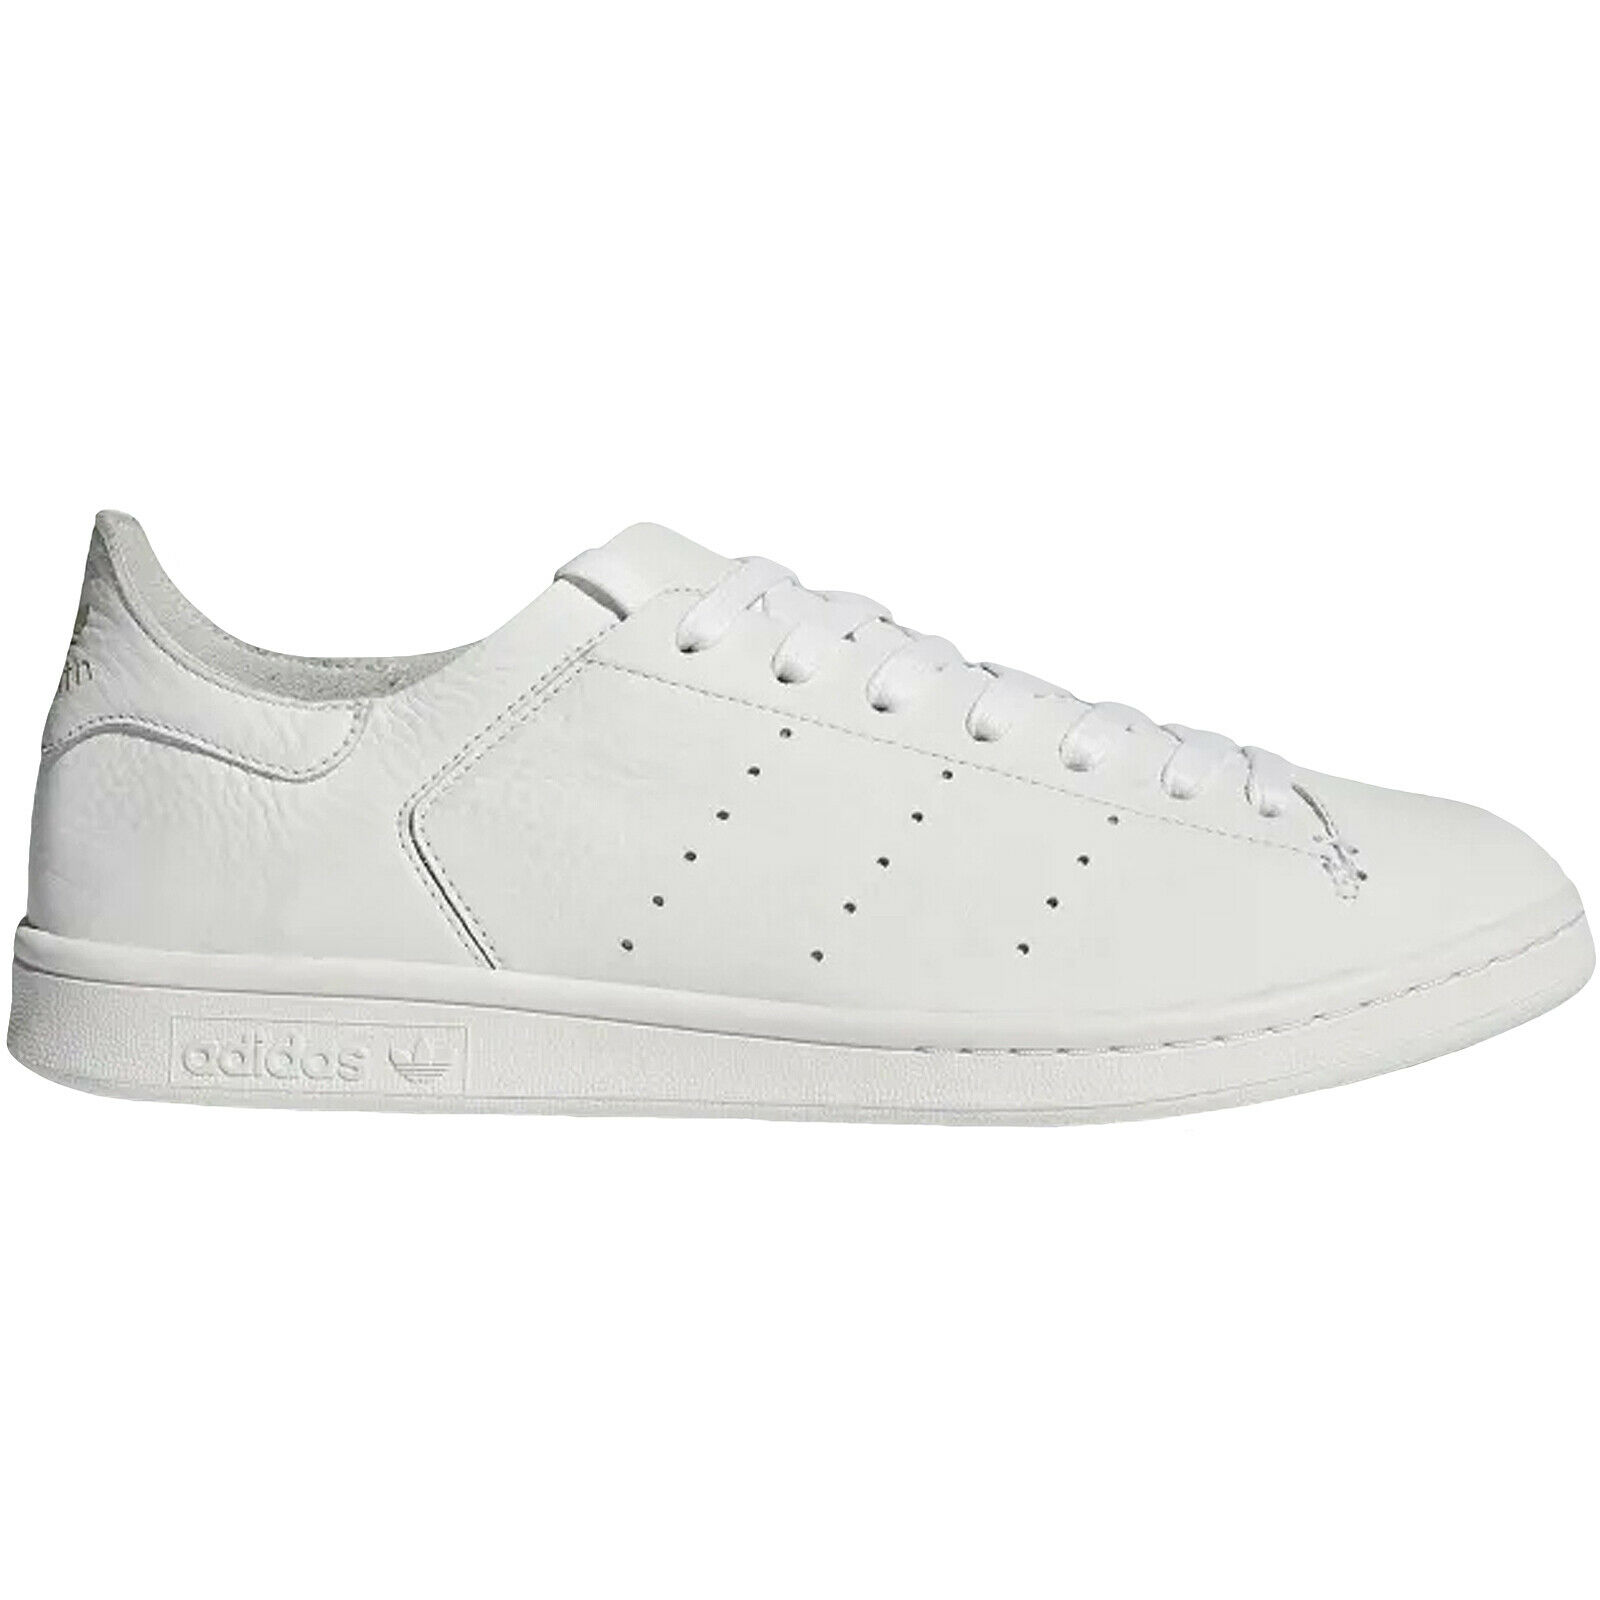 Adidas Originals Mens Stan Smith Leather Sock Casual Trainers Turnschuhe - Weiß